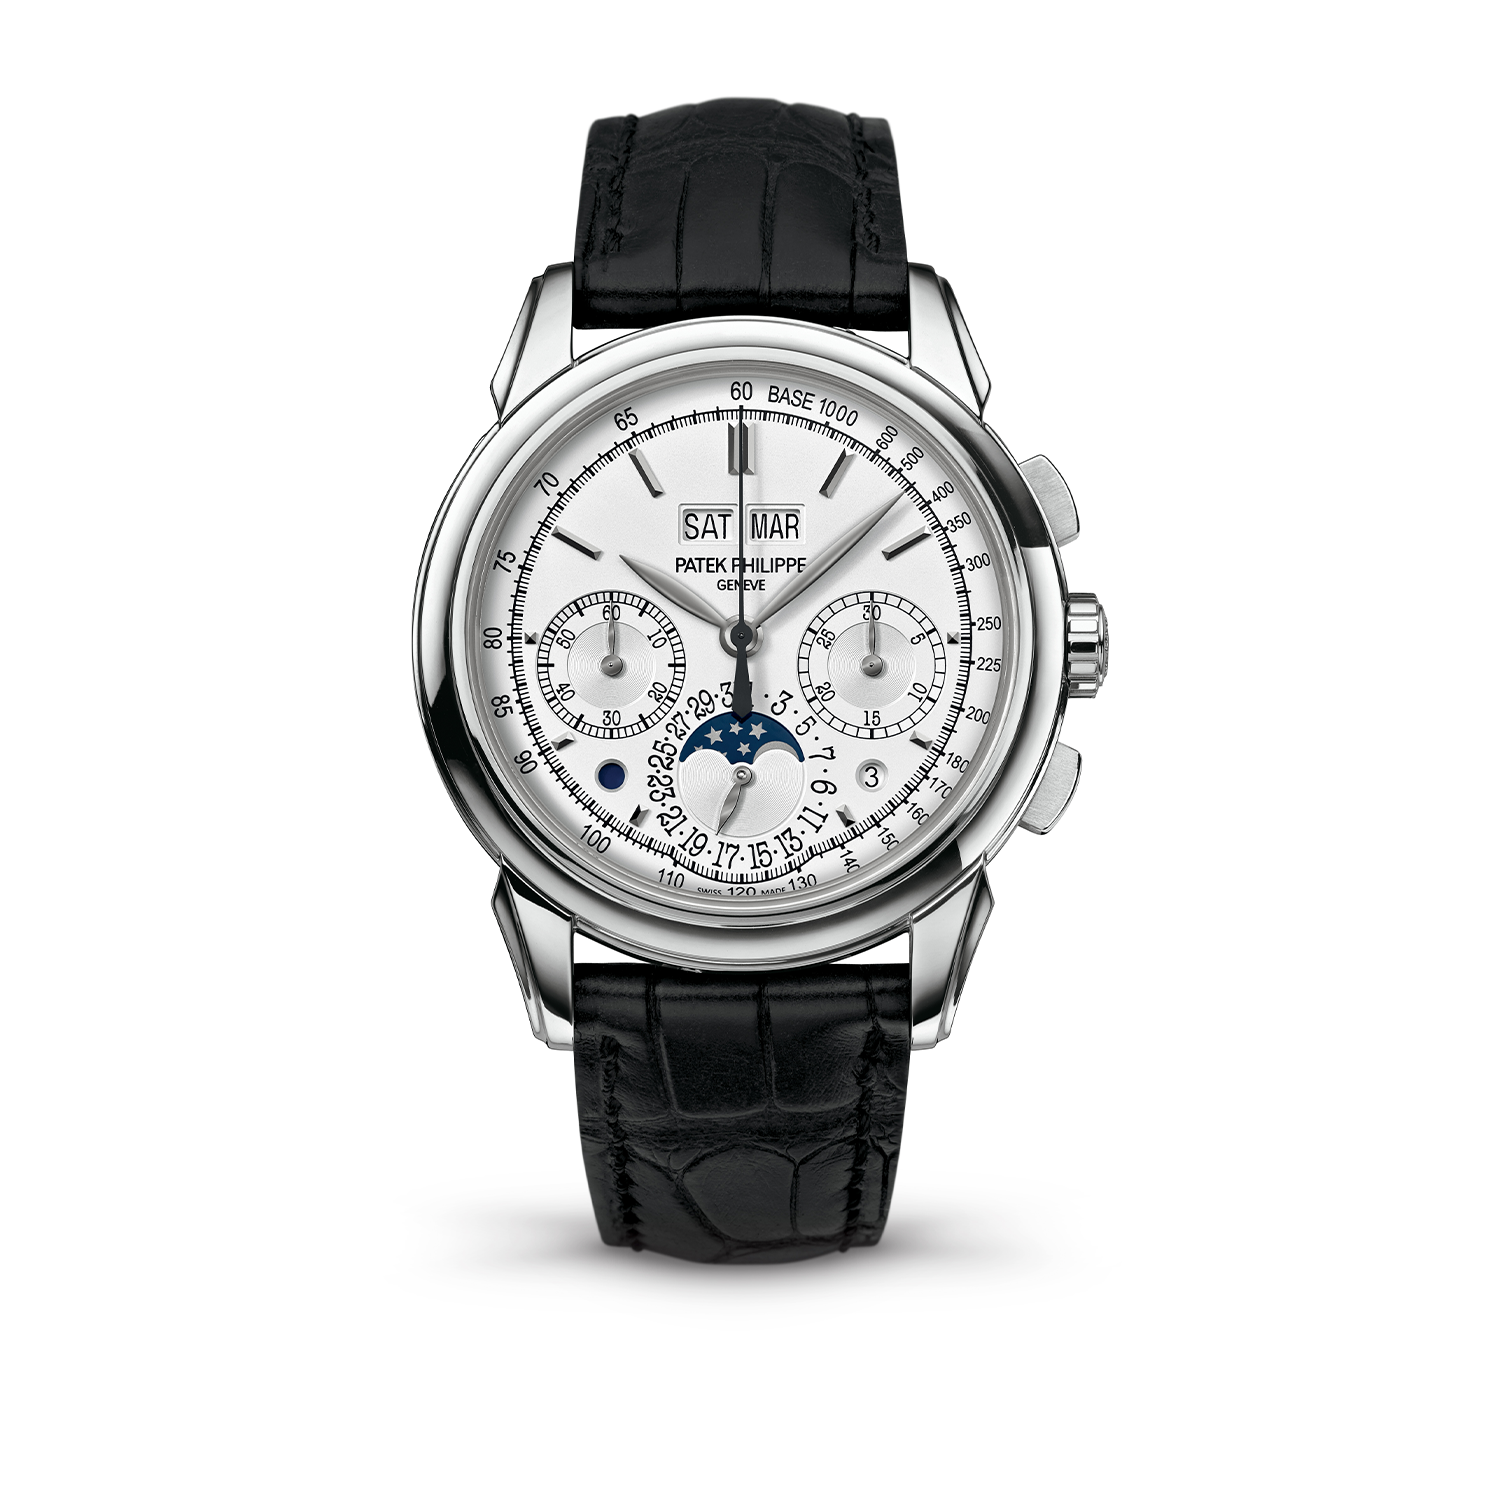 "2013 version of the Patek Philippe ref. 5270G, the 5270G-013 with the infamous ""chin"" and tachymeter scale on the watch dial, this second version of the white gold 5270 was discontinued in 2017"